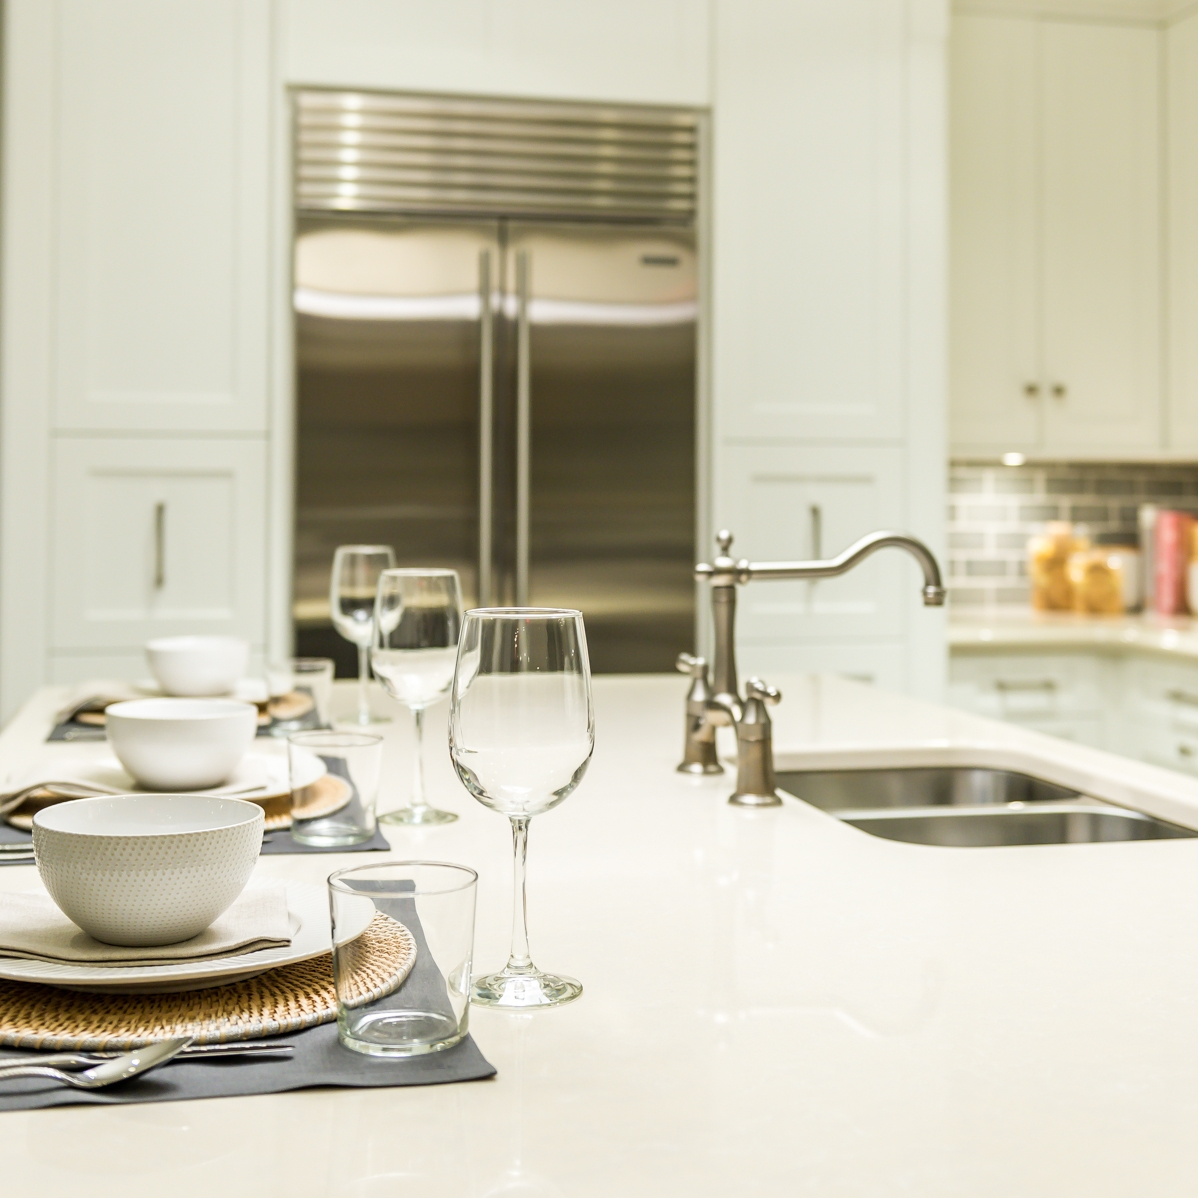 lonetree-dream-kitchen.jpg